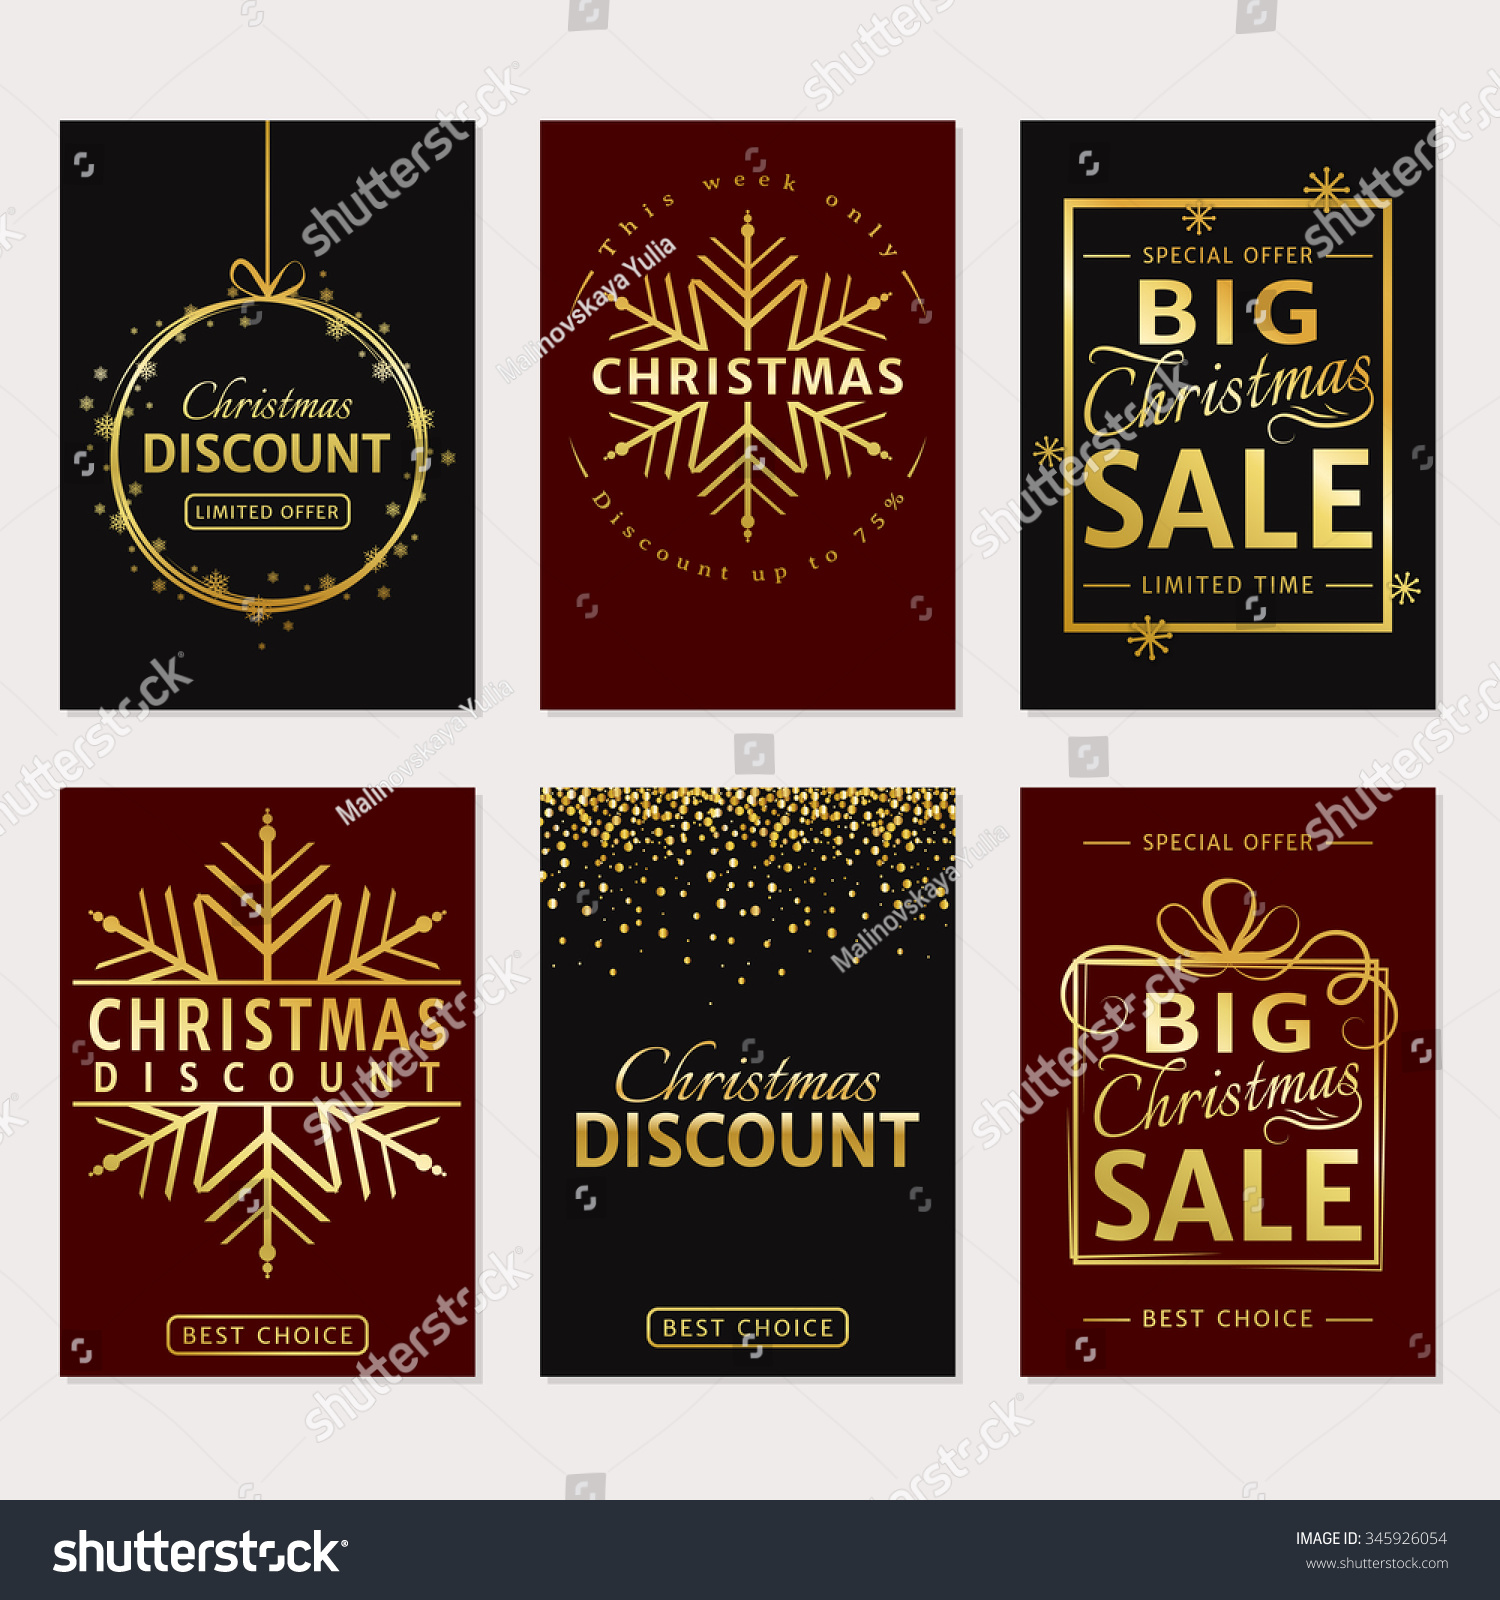 Christmas Sale Discount Templates Set Luxury Stock Vector ...